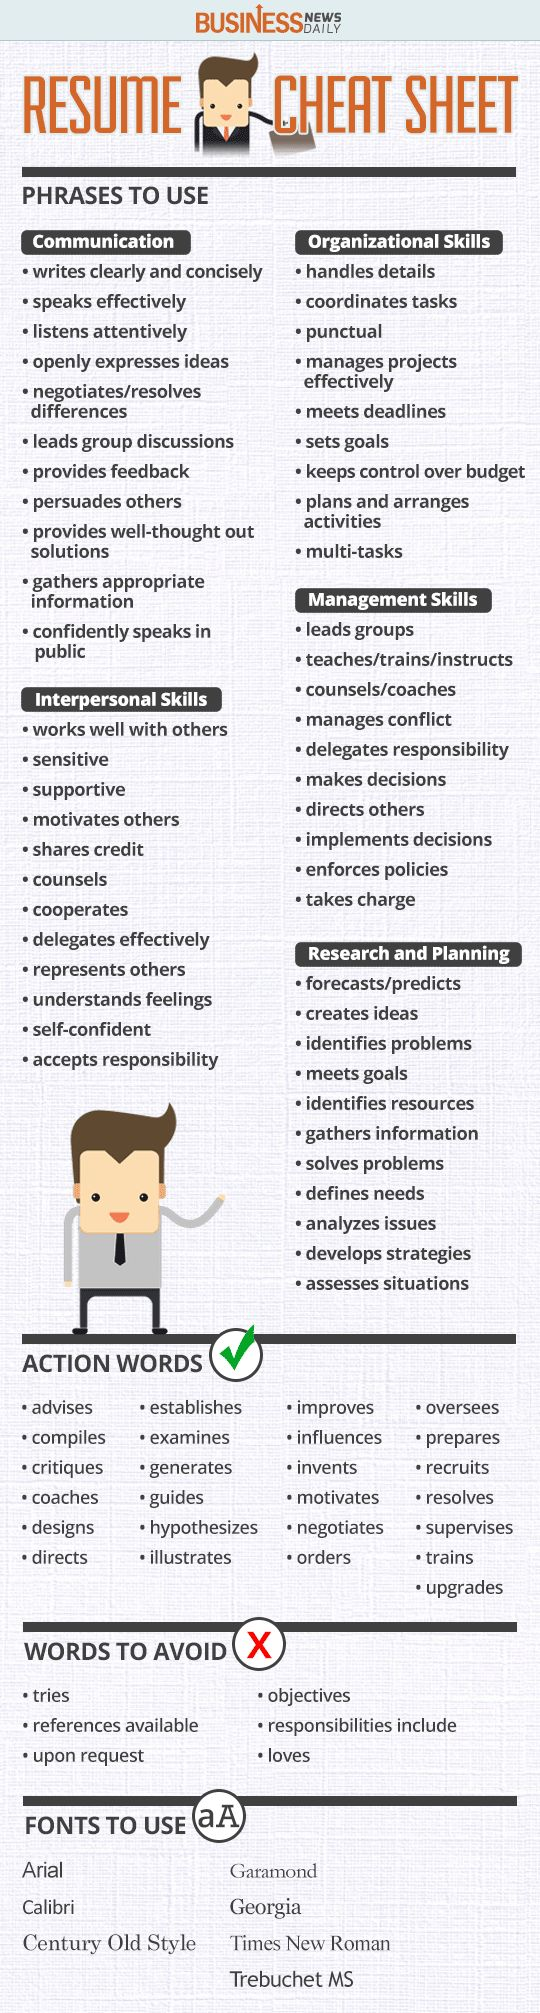 Opposenewapstandardsus  Outstanding  Ideas About Resume On Pinterest  Cv Format Resume Cv And  With Handsome Resume Cheat Sheet Infographic Andrews Almost Done With A Complete Unit On Employment Which With Astounding What Does Objective Mean On A Resume Also Government Resume In Addition Resume Template Free Download And Dental Hygiene Resume As Well As Resume Websites Additionally Physical Therapy Resume From Pinterestcom With Opposenewapstandardsus  Handsome  Ideas About Resume On Pinterest  Cv Format Resume Cv And  With Astounding Resume Cheat Sheet Infographic Andrews Almost Done With A Complete Unit On Employment Which And Outstanding What Does Objective Mean On A Resume Also Government Resume In Addition Resume Template Free Download From Pinterestcom